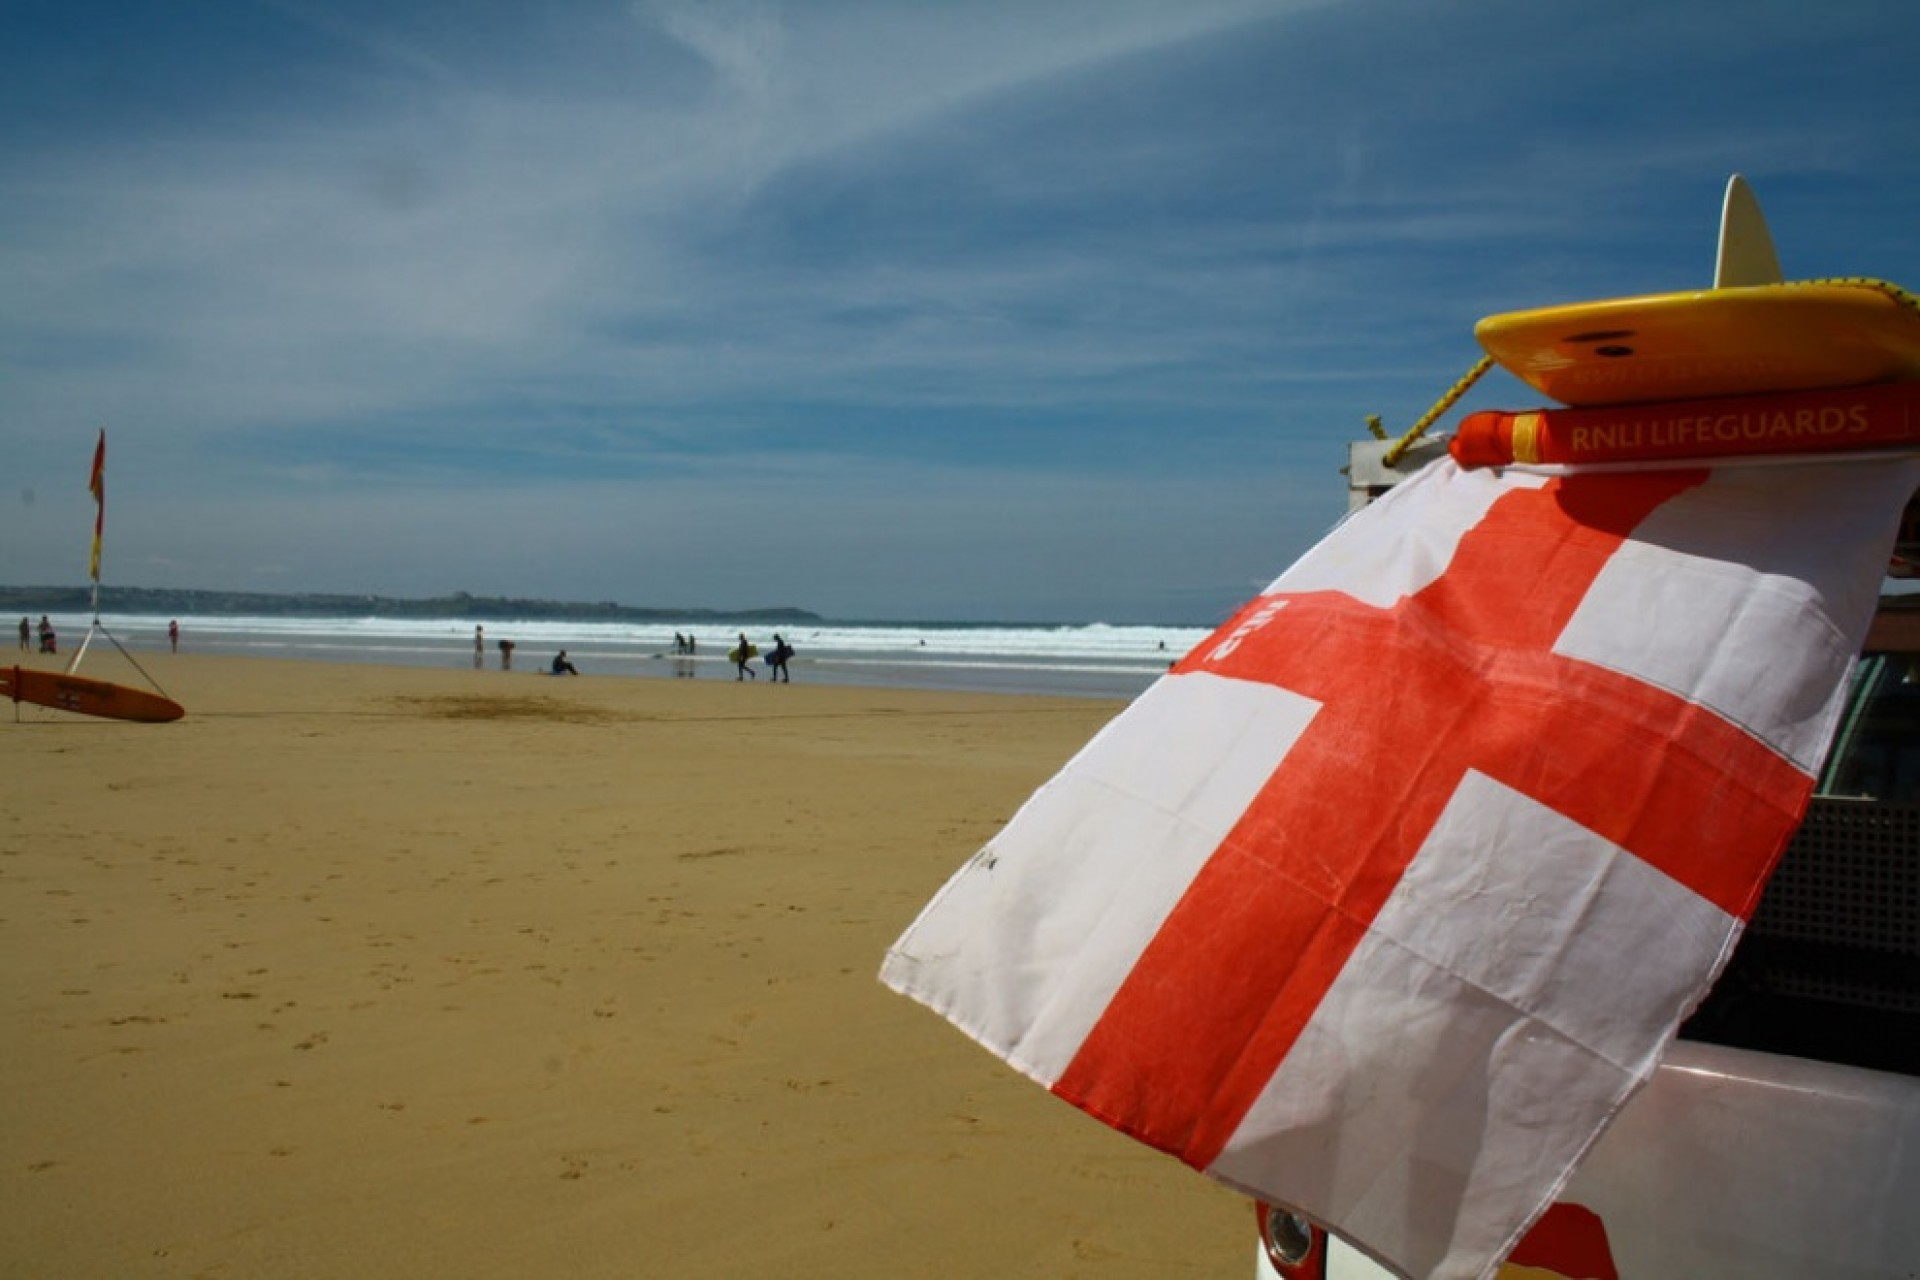 Errant Surf's photo of Watergate Bay